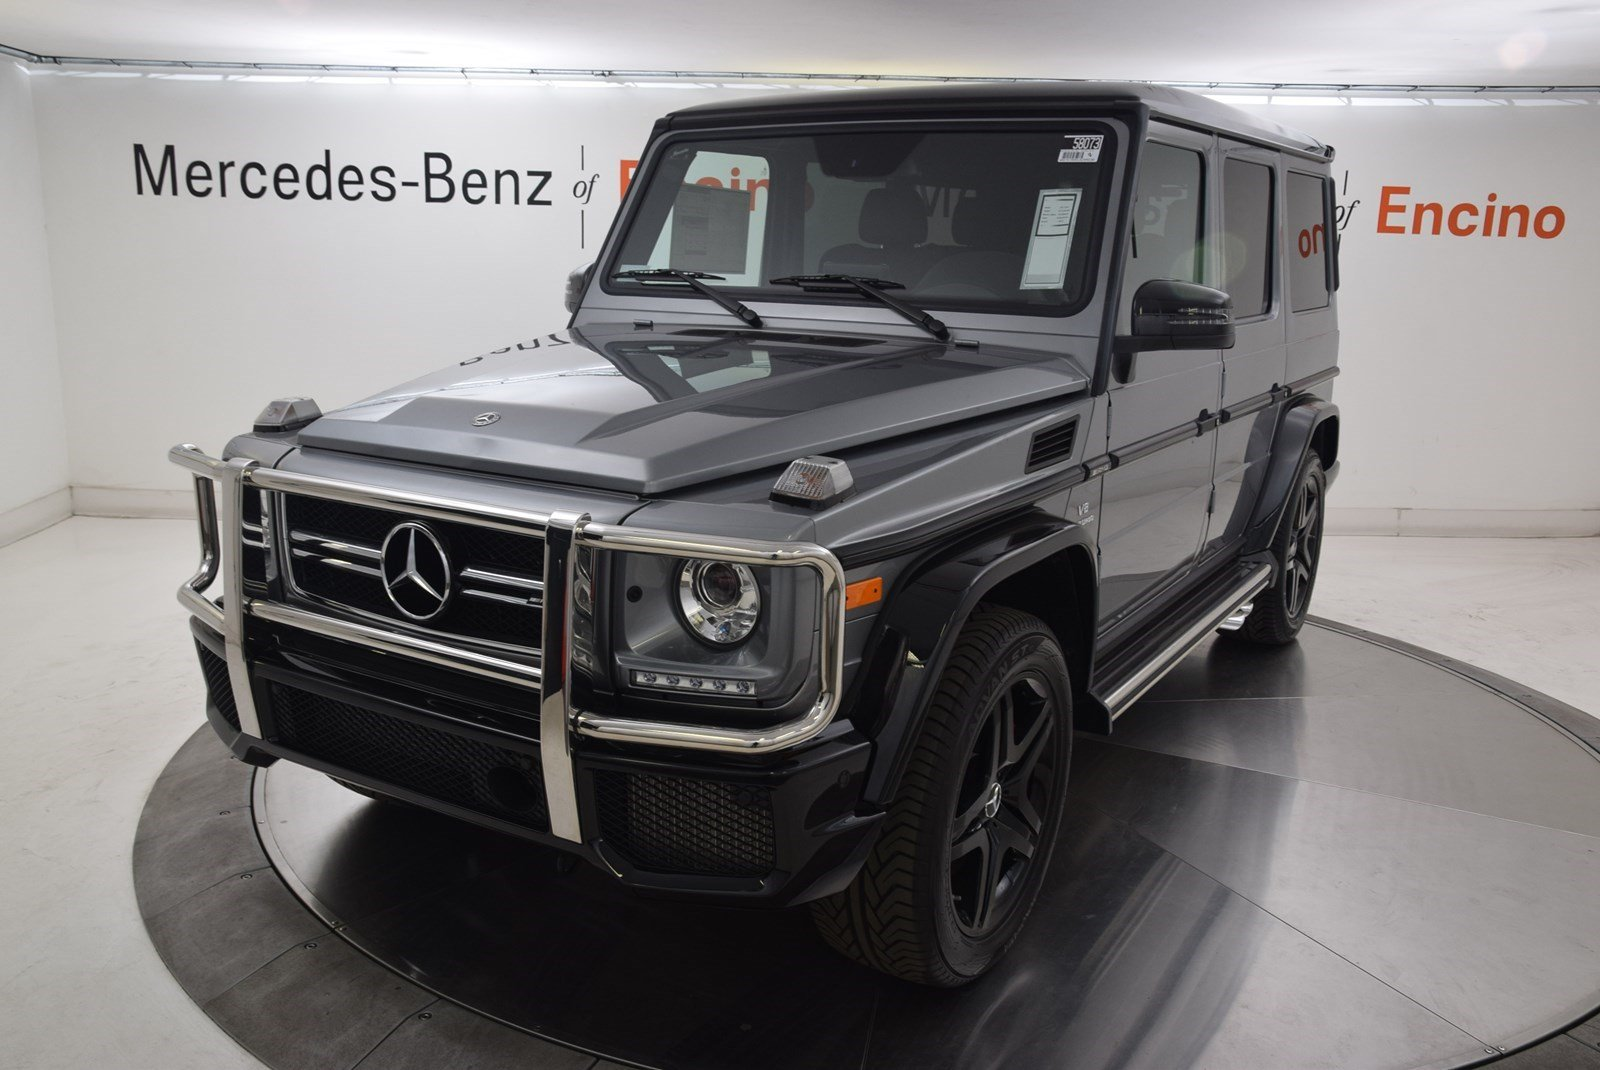 New 2018 mercedes benz g class amg g 63 suv suv in encino for Mercedes benz suv 2018 price